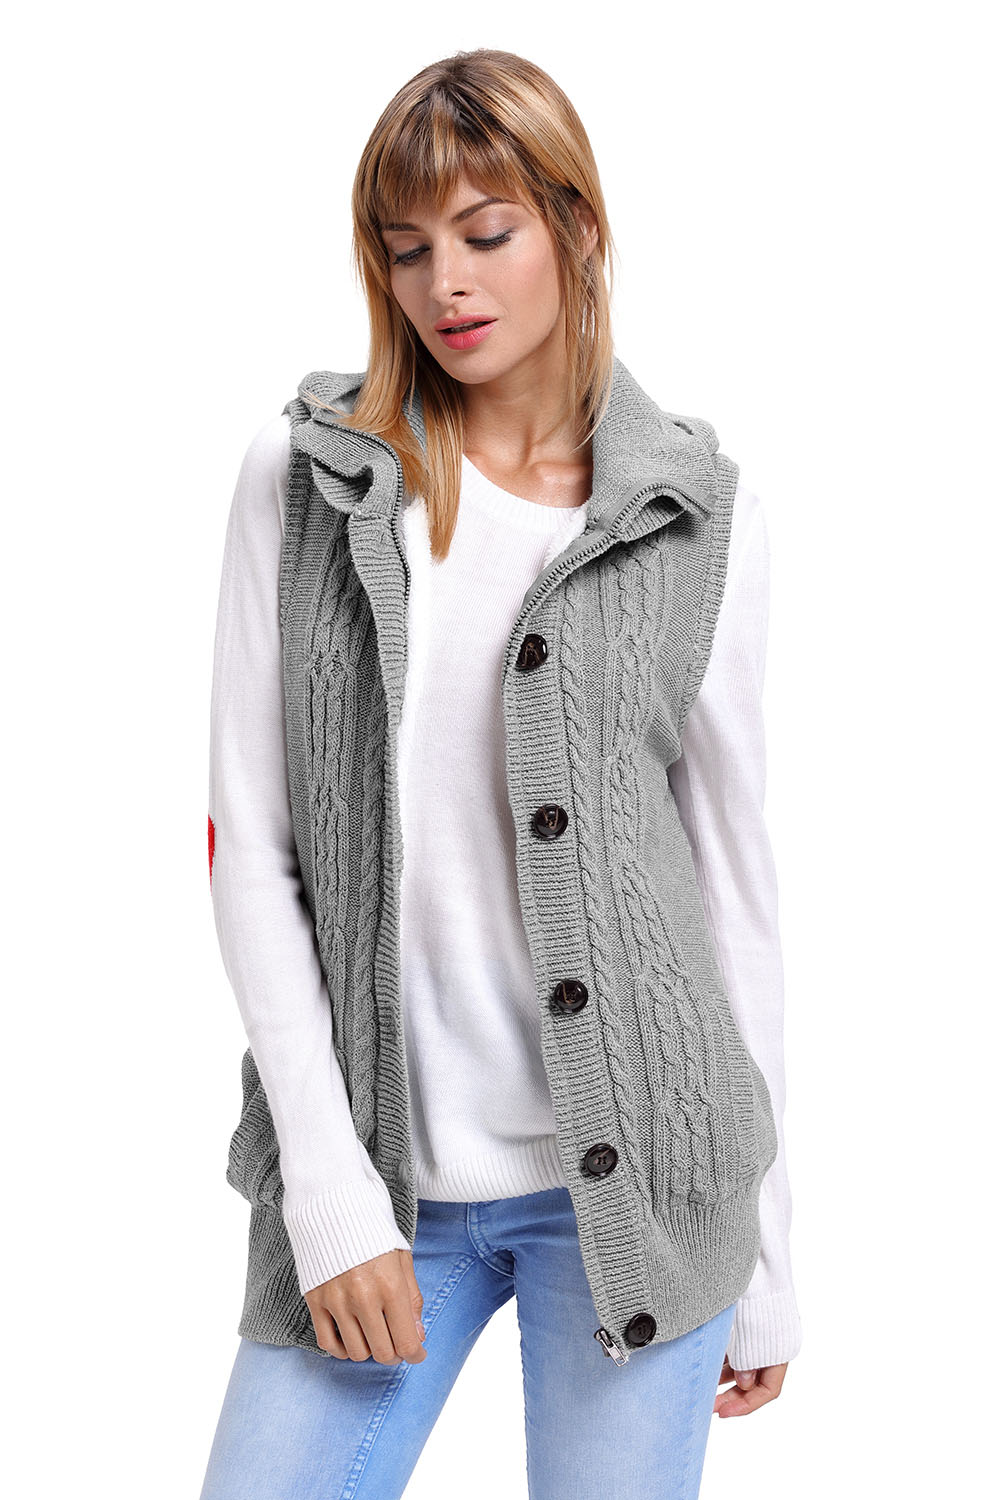 Us4045 Zkess Grey Cable Knit Hooded Sweater Vest